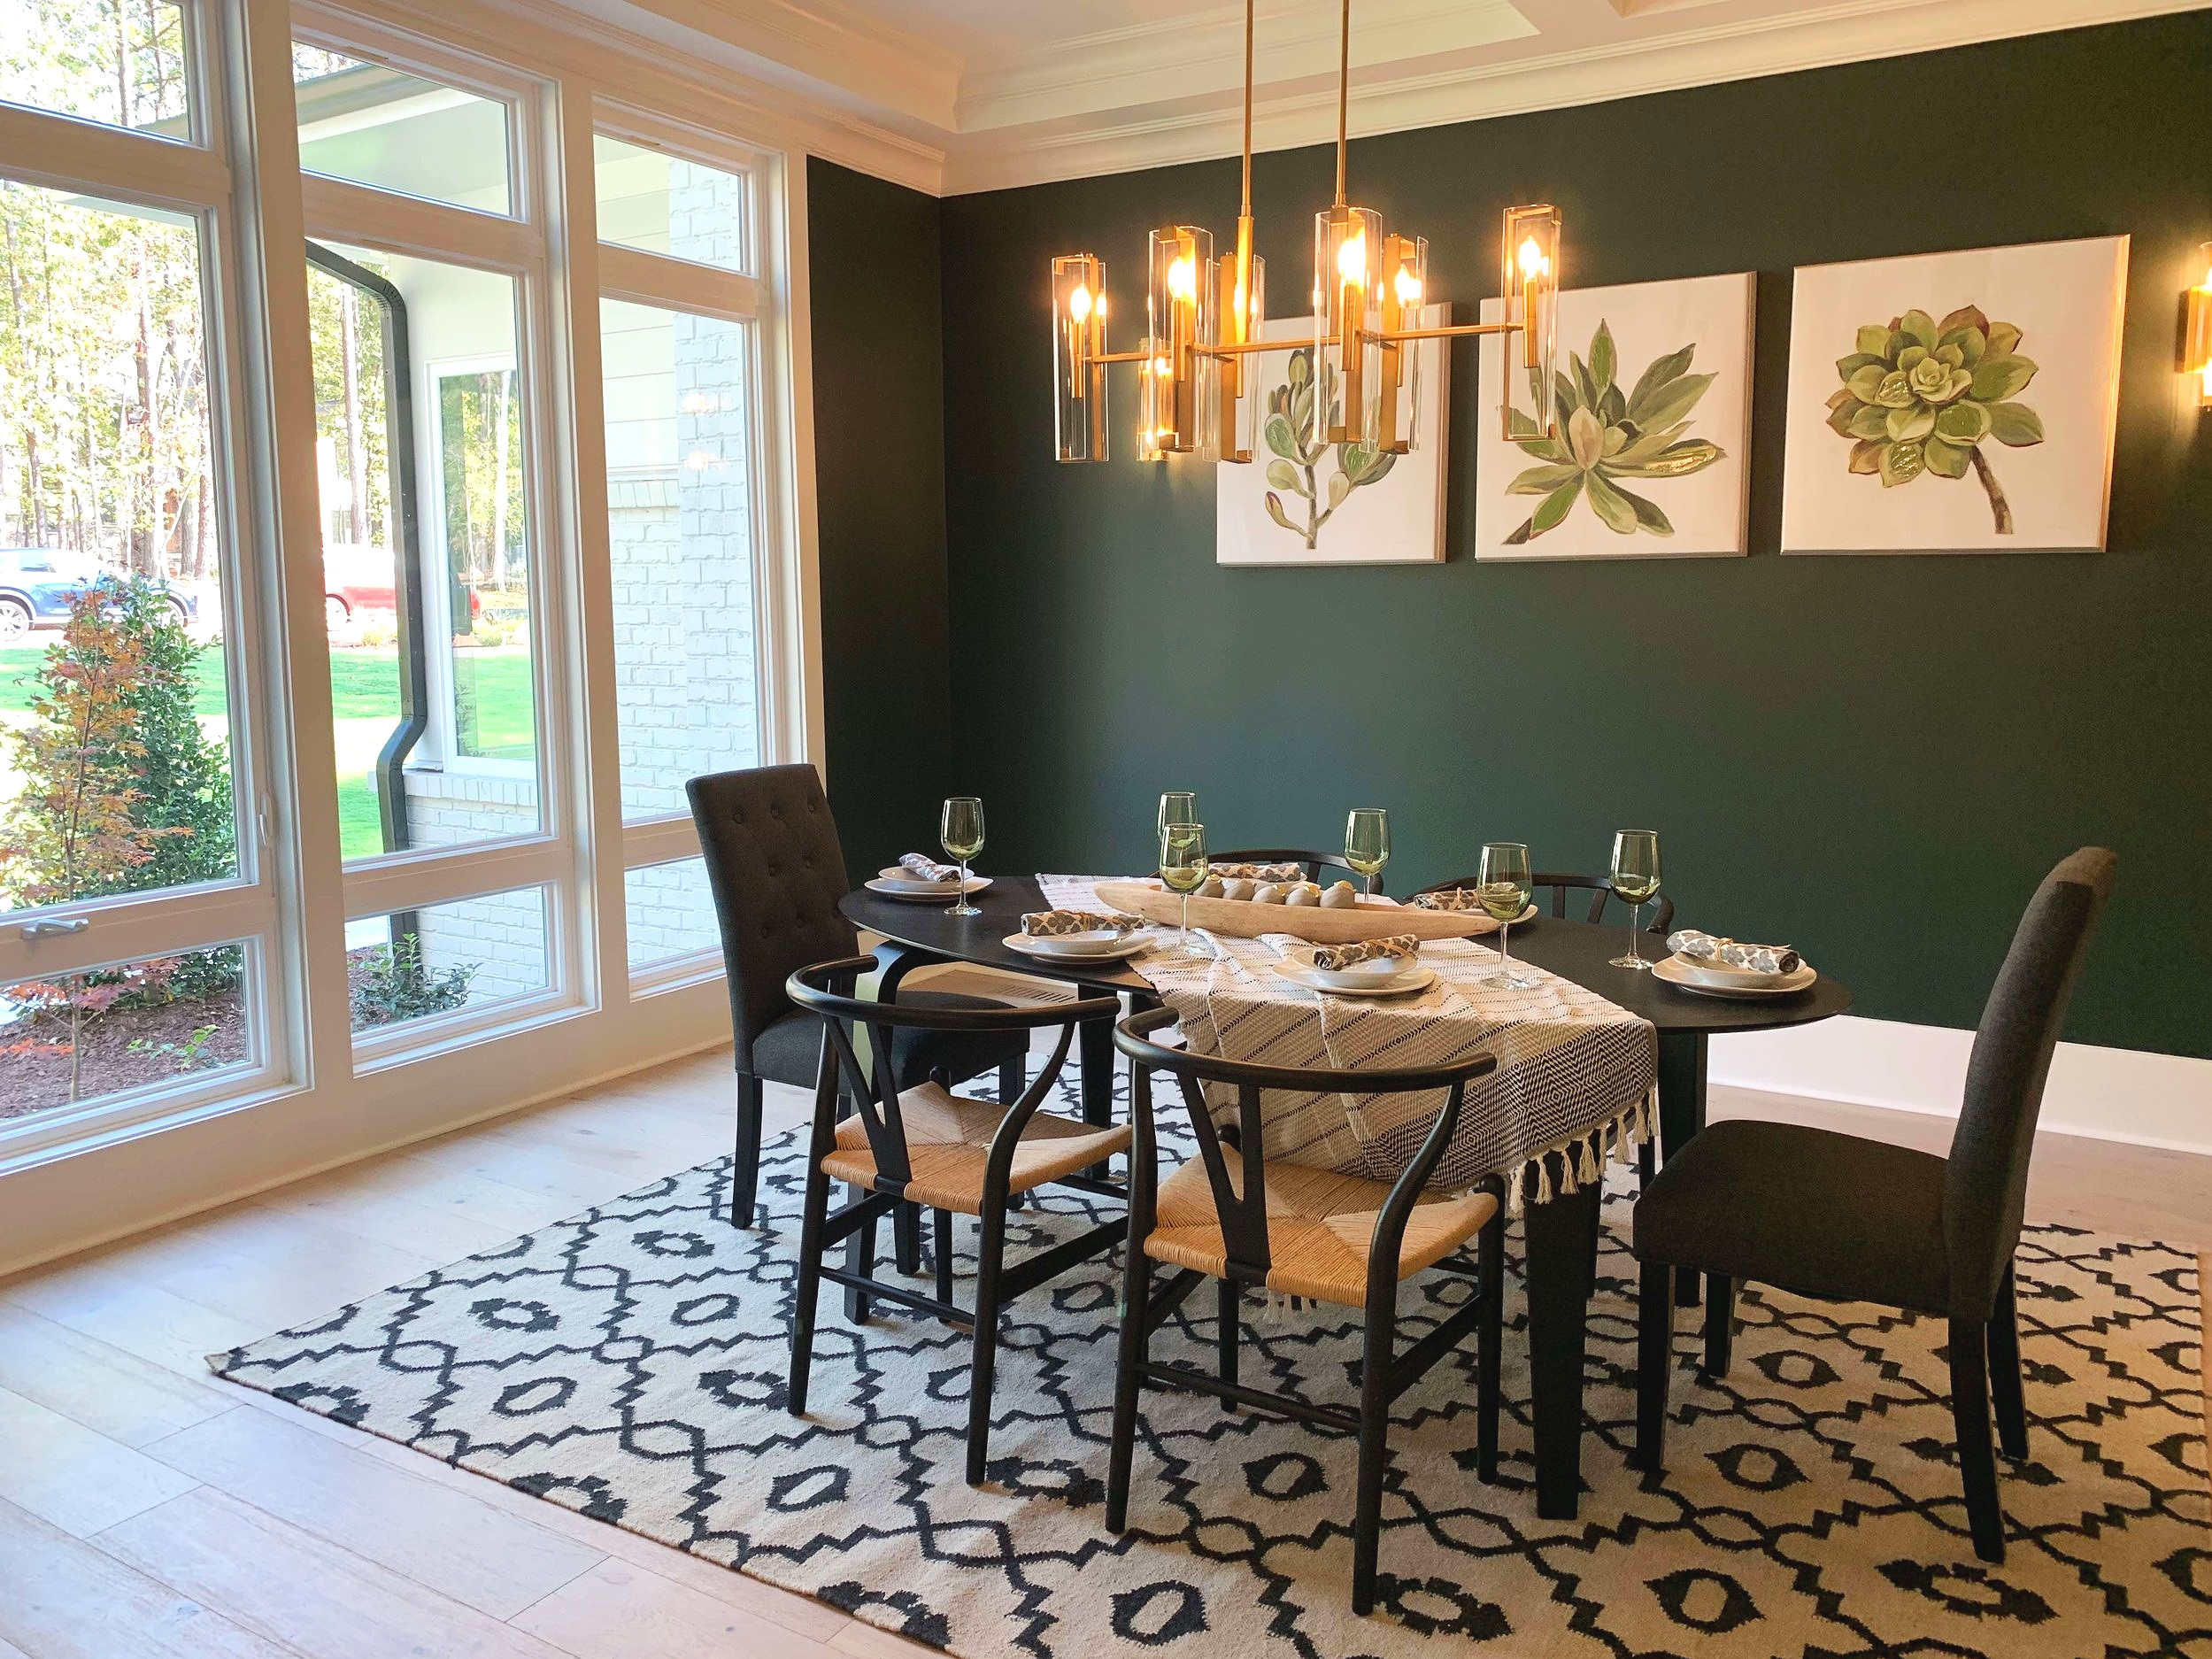 Dining room with rug, oval table, modern chairs, large windows and dark painted accent wall.